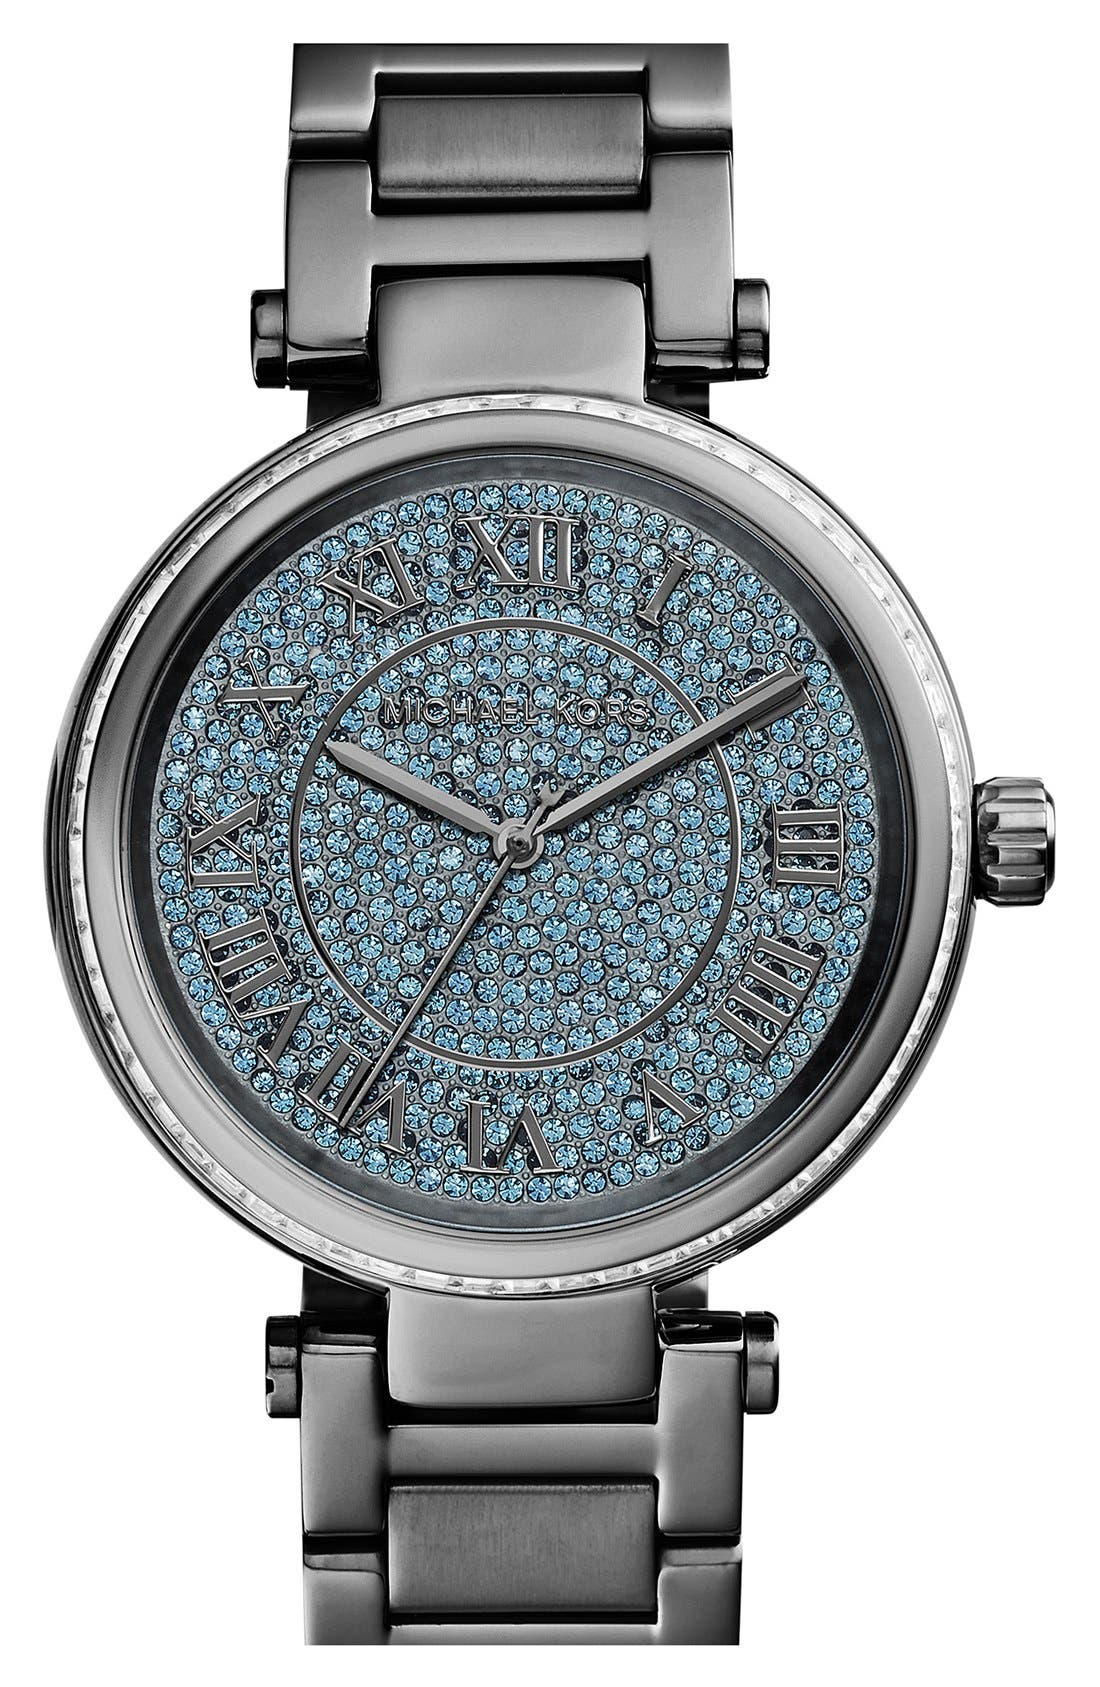 Alternate Image 1 Selected - Michael Kors 'Skylar' Pavé Dial Crystal Bezel Bracelet Watch, 42mm